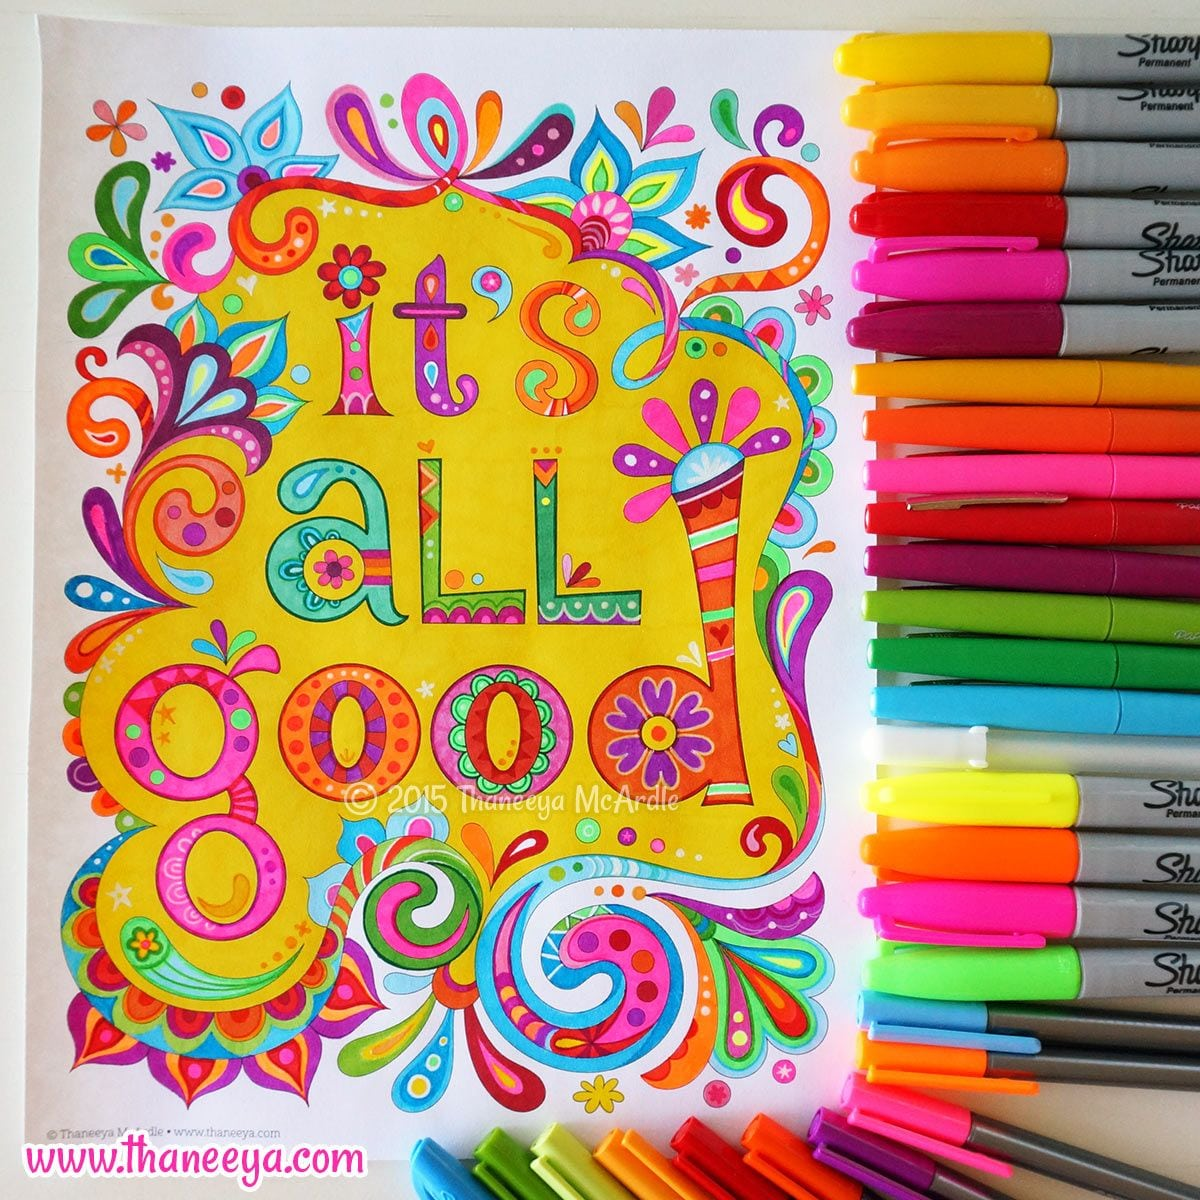 A Coloring Page Done Entirely With Sharpies! Learn About My